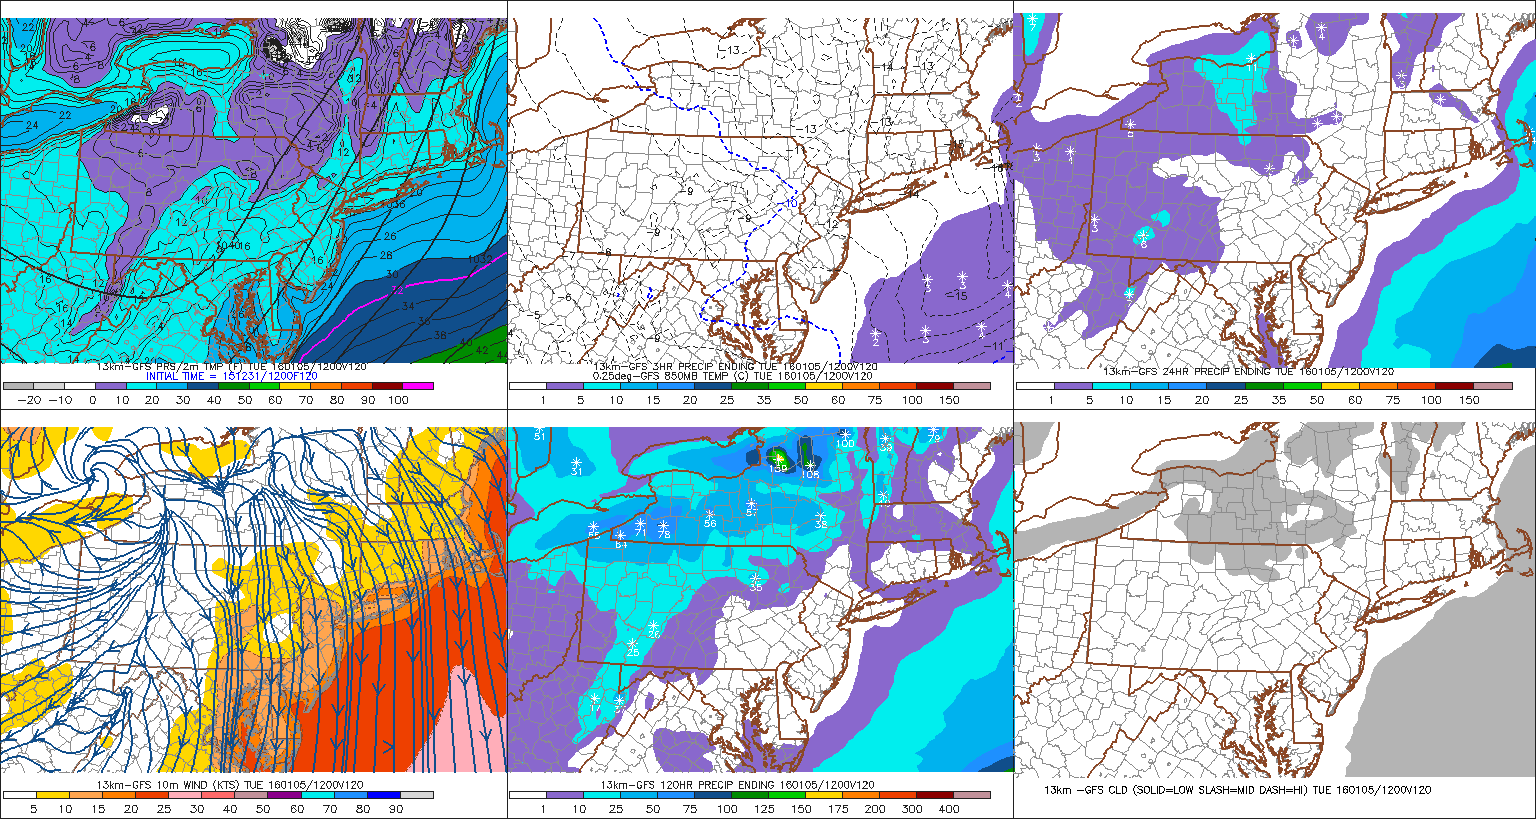 The 12z GFS showing low temperatures in the teens Tuesday morning